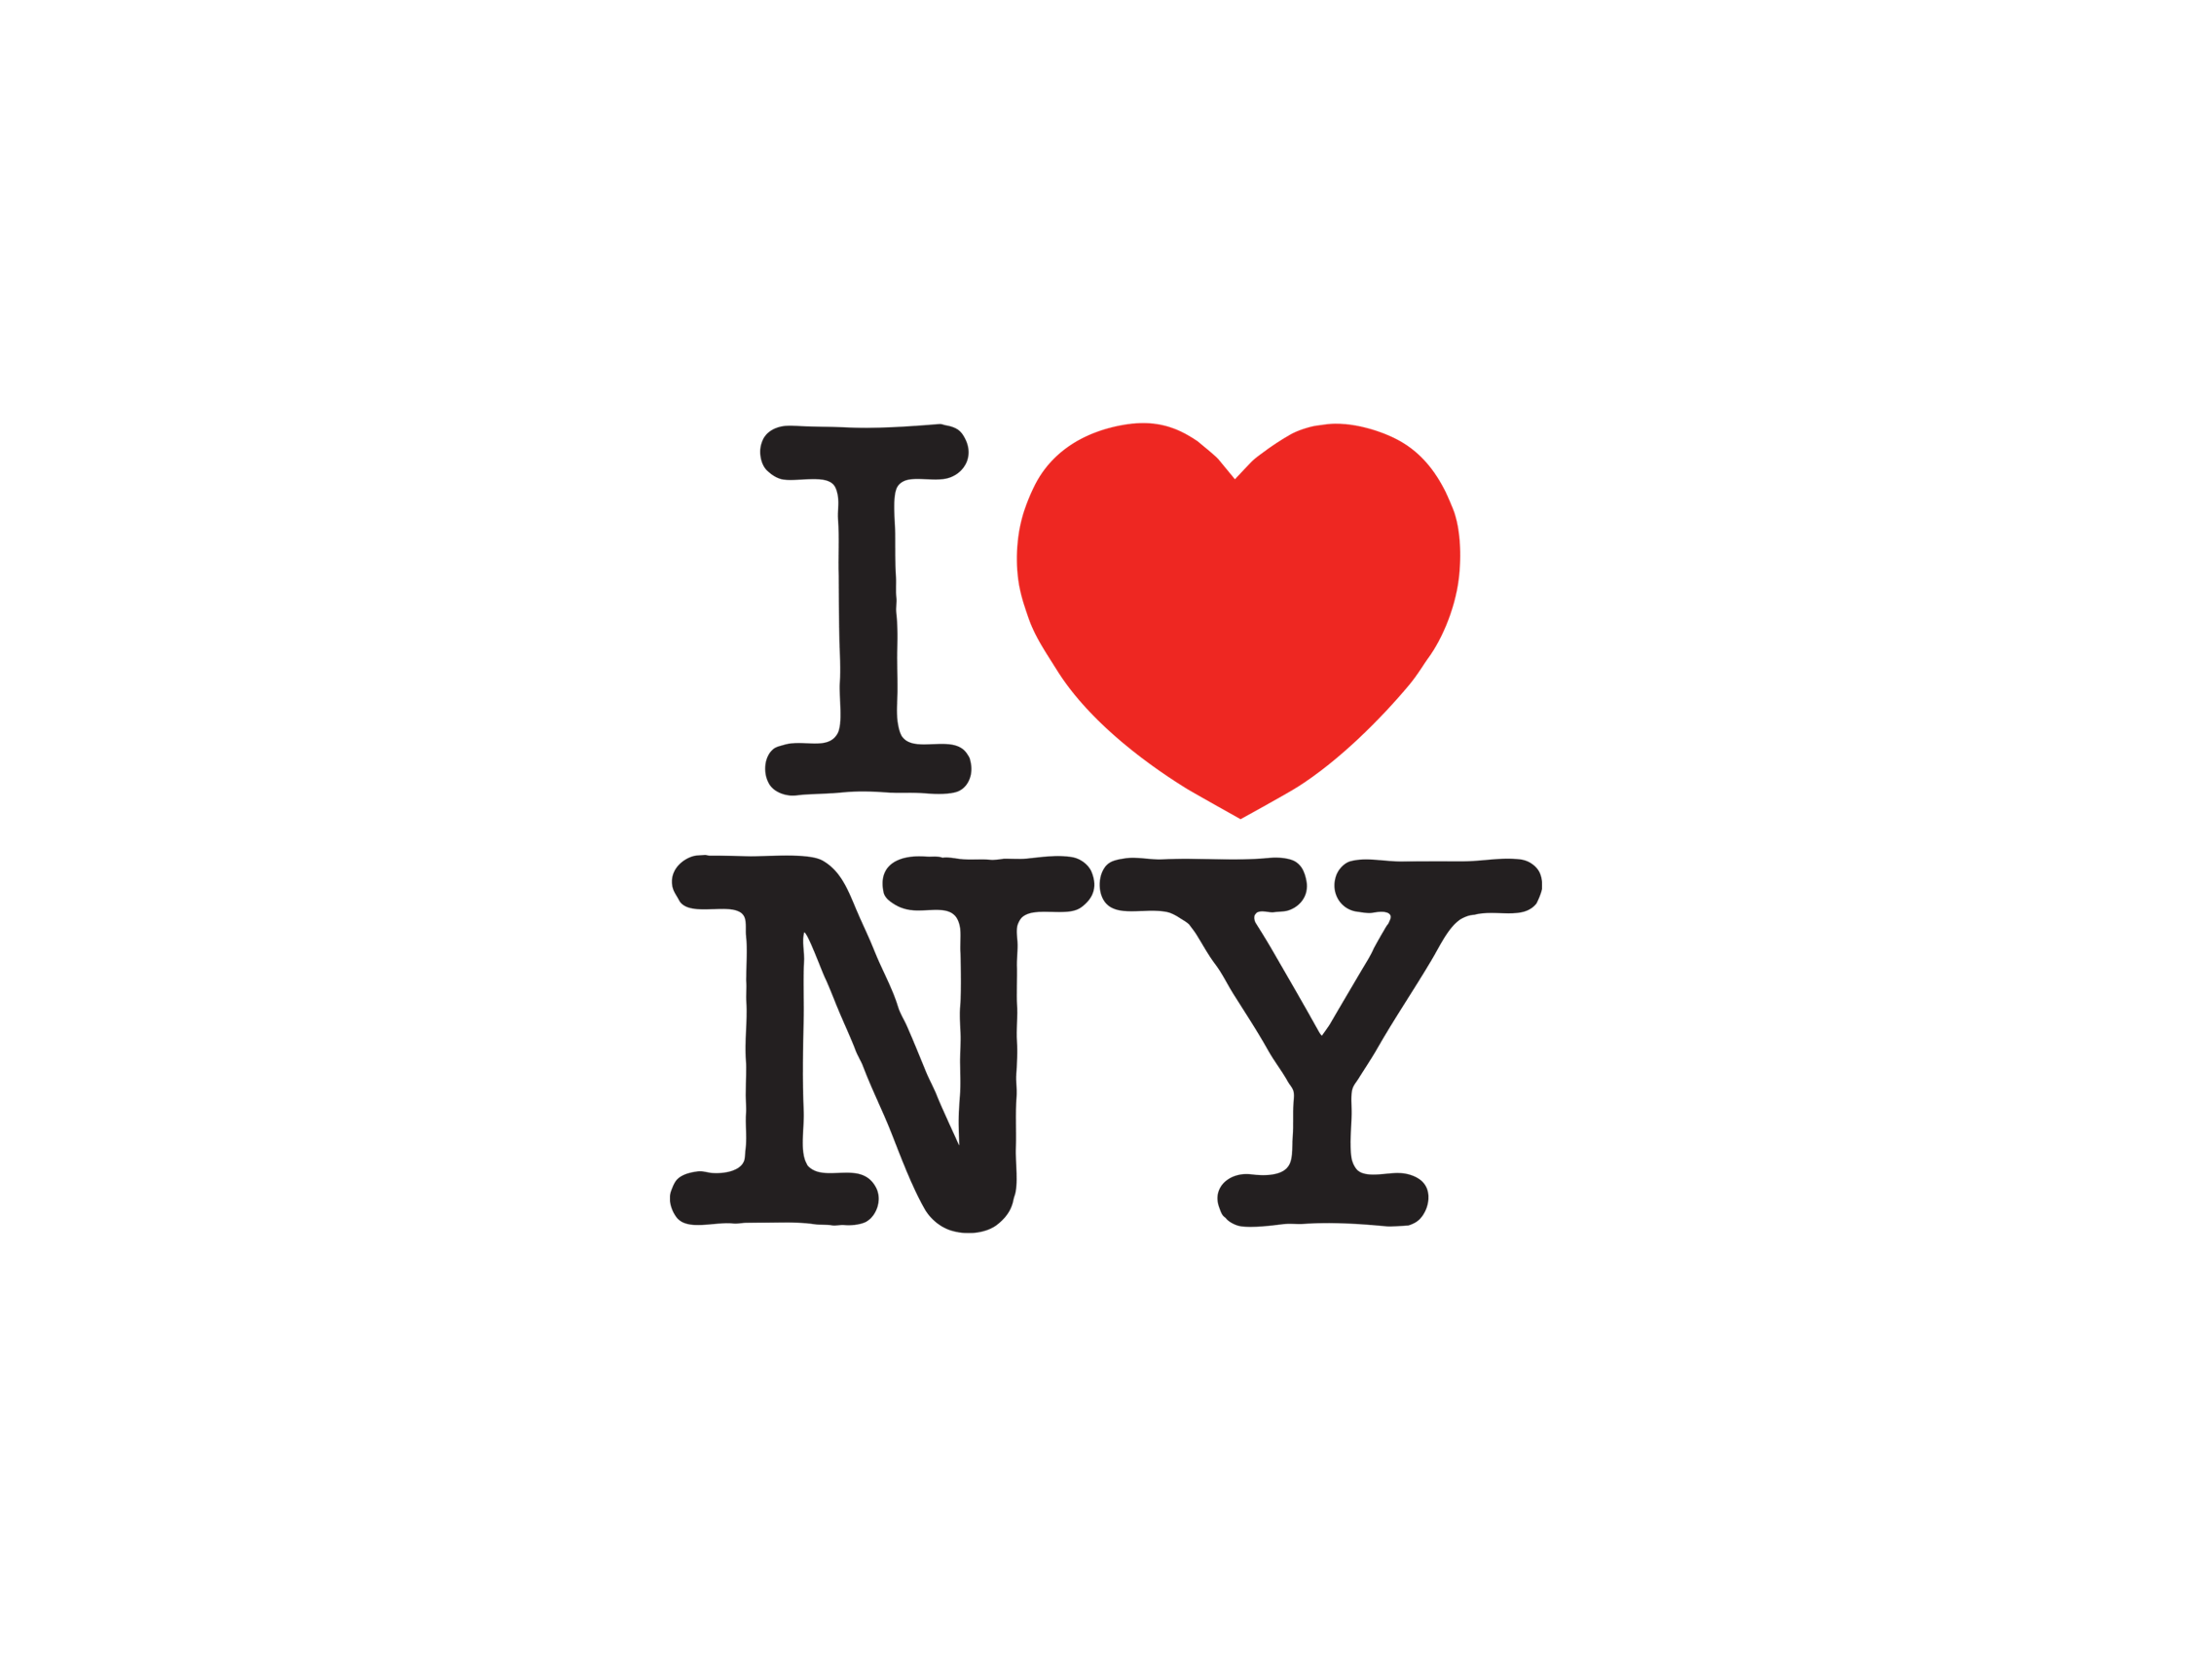 I Love New York Png - I Love New York Png Hdpng.com 2272, Transparent background PNG HD thumbnail